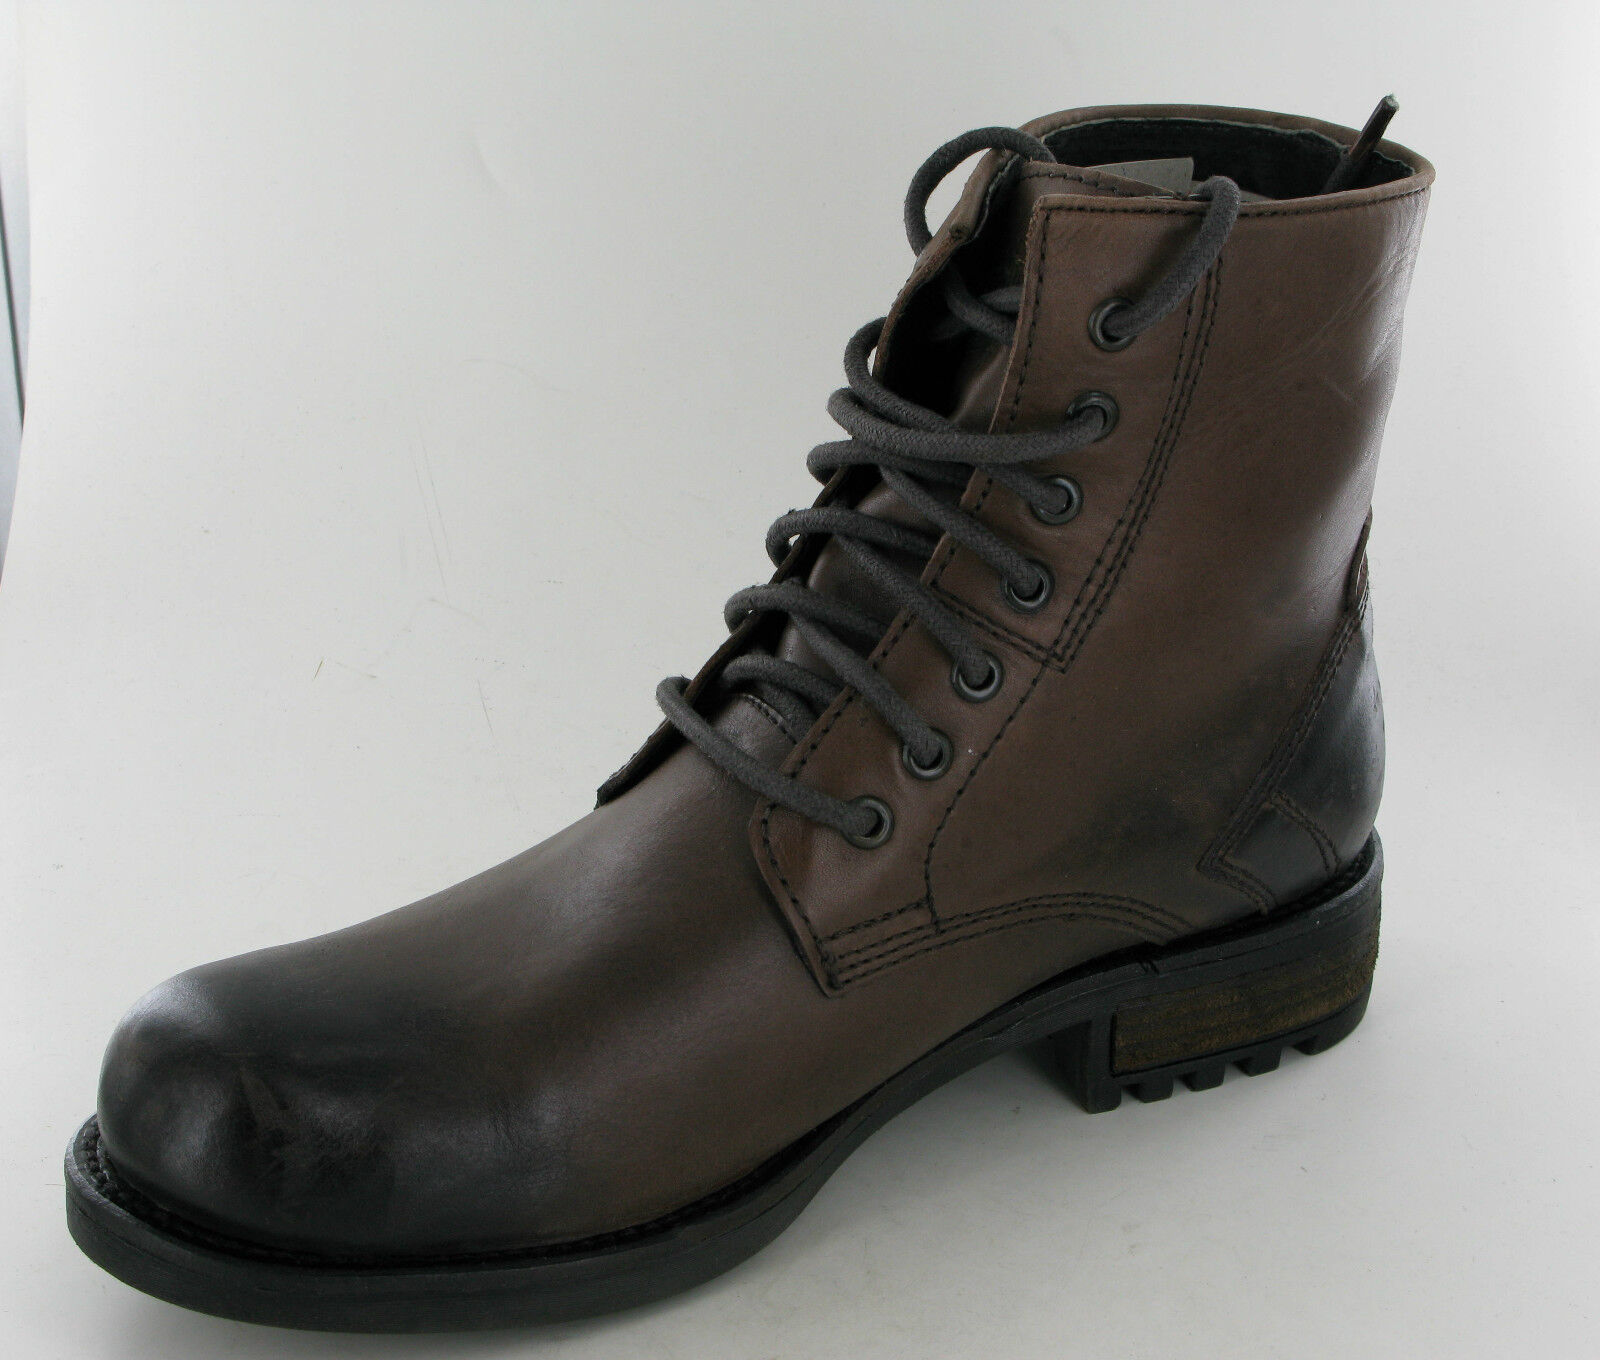 MEN'S MILITARY BASE LONDON COMBAT ARMY ANKLE LACE UP ANKLE ARMY Stiefel UK SIZE 6 7 8 9 11 12 416d26